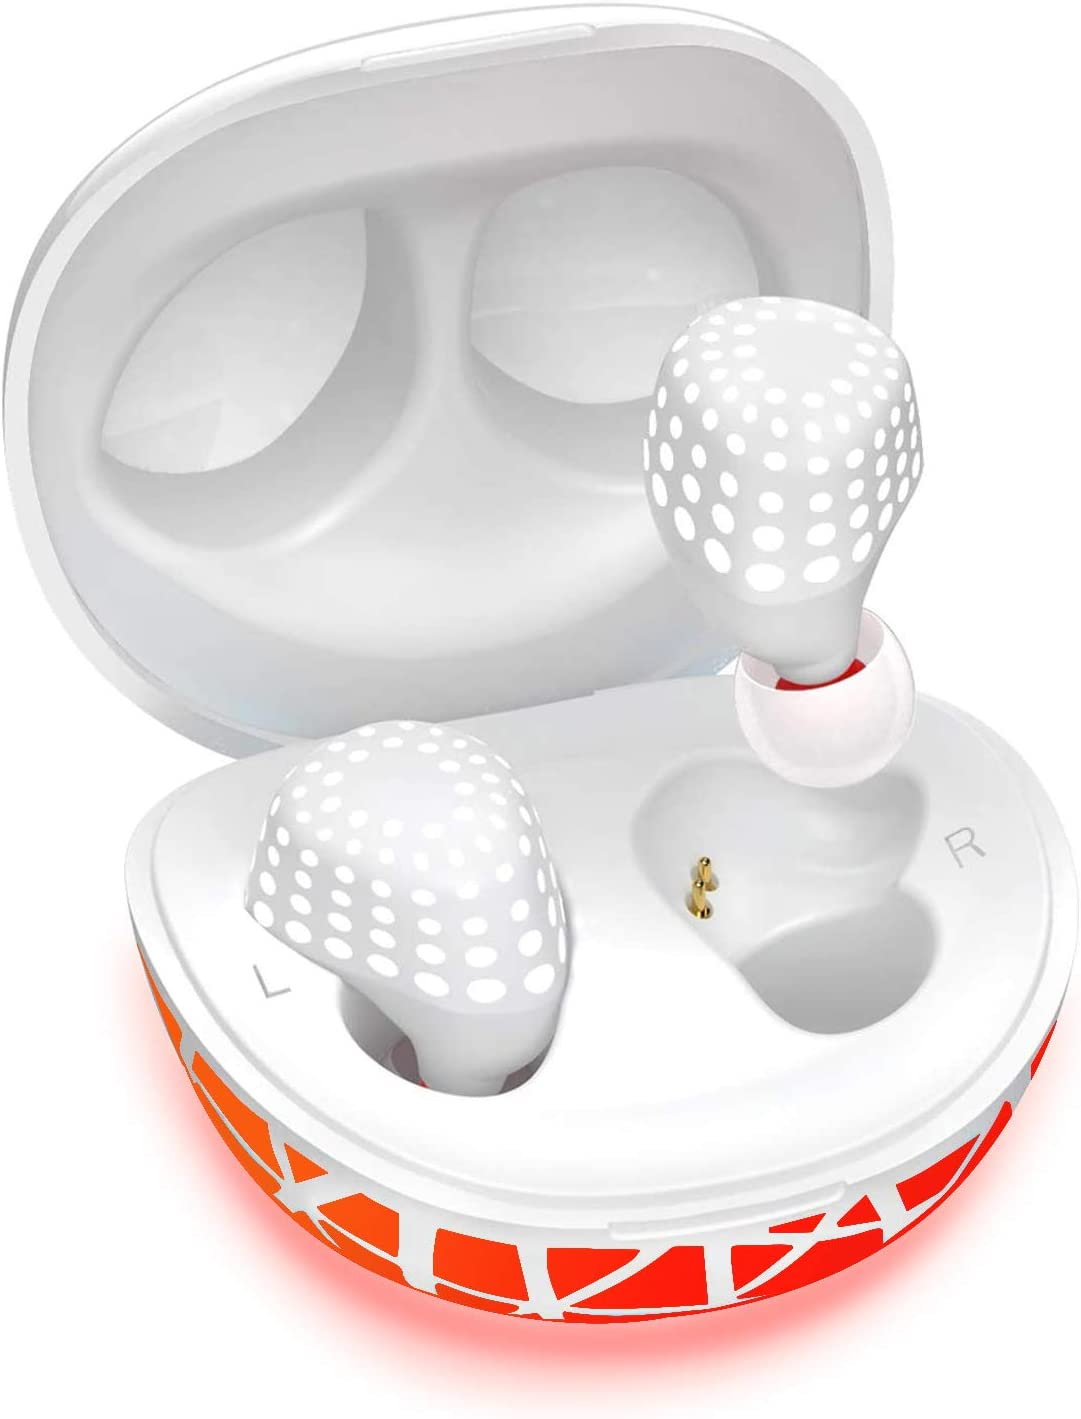 Wireless Earbuds, AMORNO True Bluetooth Headphones in-Ear Deep Bass Noise Cancelling Earphones Mini Sweatproof Sports Headsets with Charging Case Built-in Mic (White)